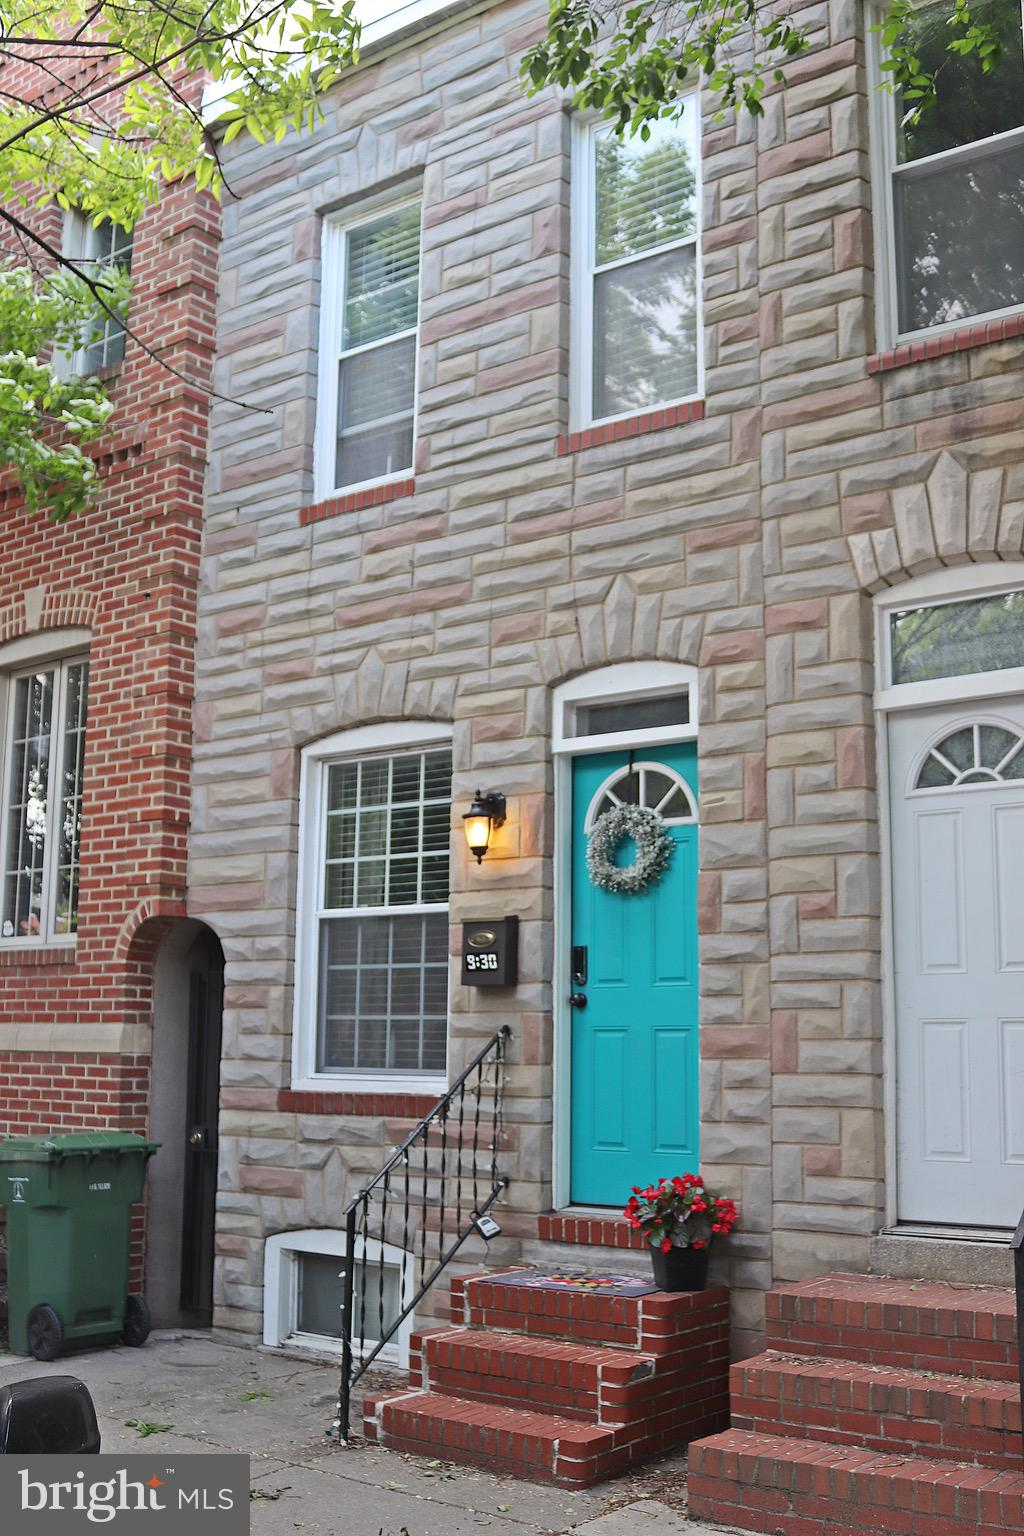 WELCOME TO THE HEART OF CANTON! THIS AFFORDABLE &  CHARMING 2 BED, 2.5 BATH  TOWNHOME IS LOCATED  IN THE HEART OF CANTON. ENJOY WALKS TO THE WATERFRONT, PARKS & LOCAL DINING. EACH BEDROOM HAS ITS OWN BATH. UPDATED KITCHEN W/ STAINLESS STEEL APPLIANCES.  NEW ROOF IN 2018. THIS HAS BEEN A RENTAL PROPERTY FOR THE PAST FEW YEARS, AND MAKES A GREAT INVESTMENT OPPORTUNITY.